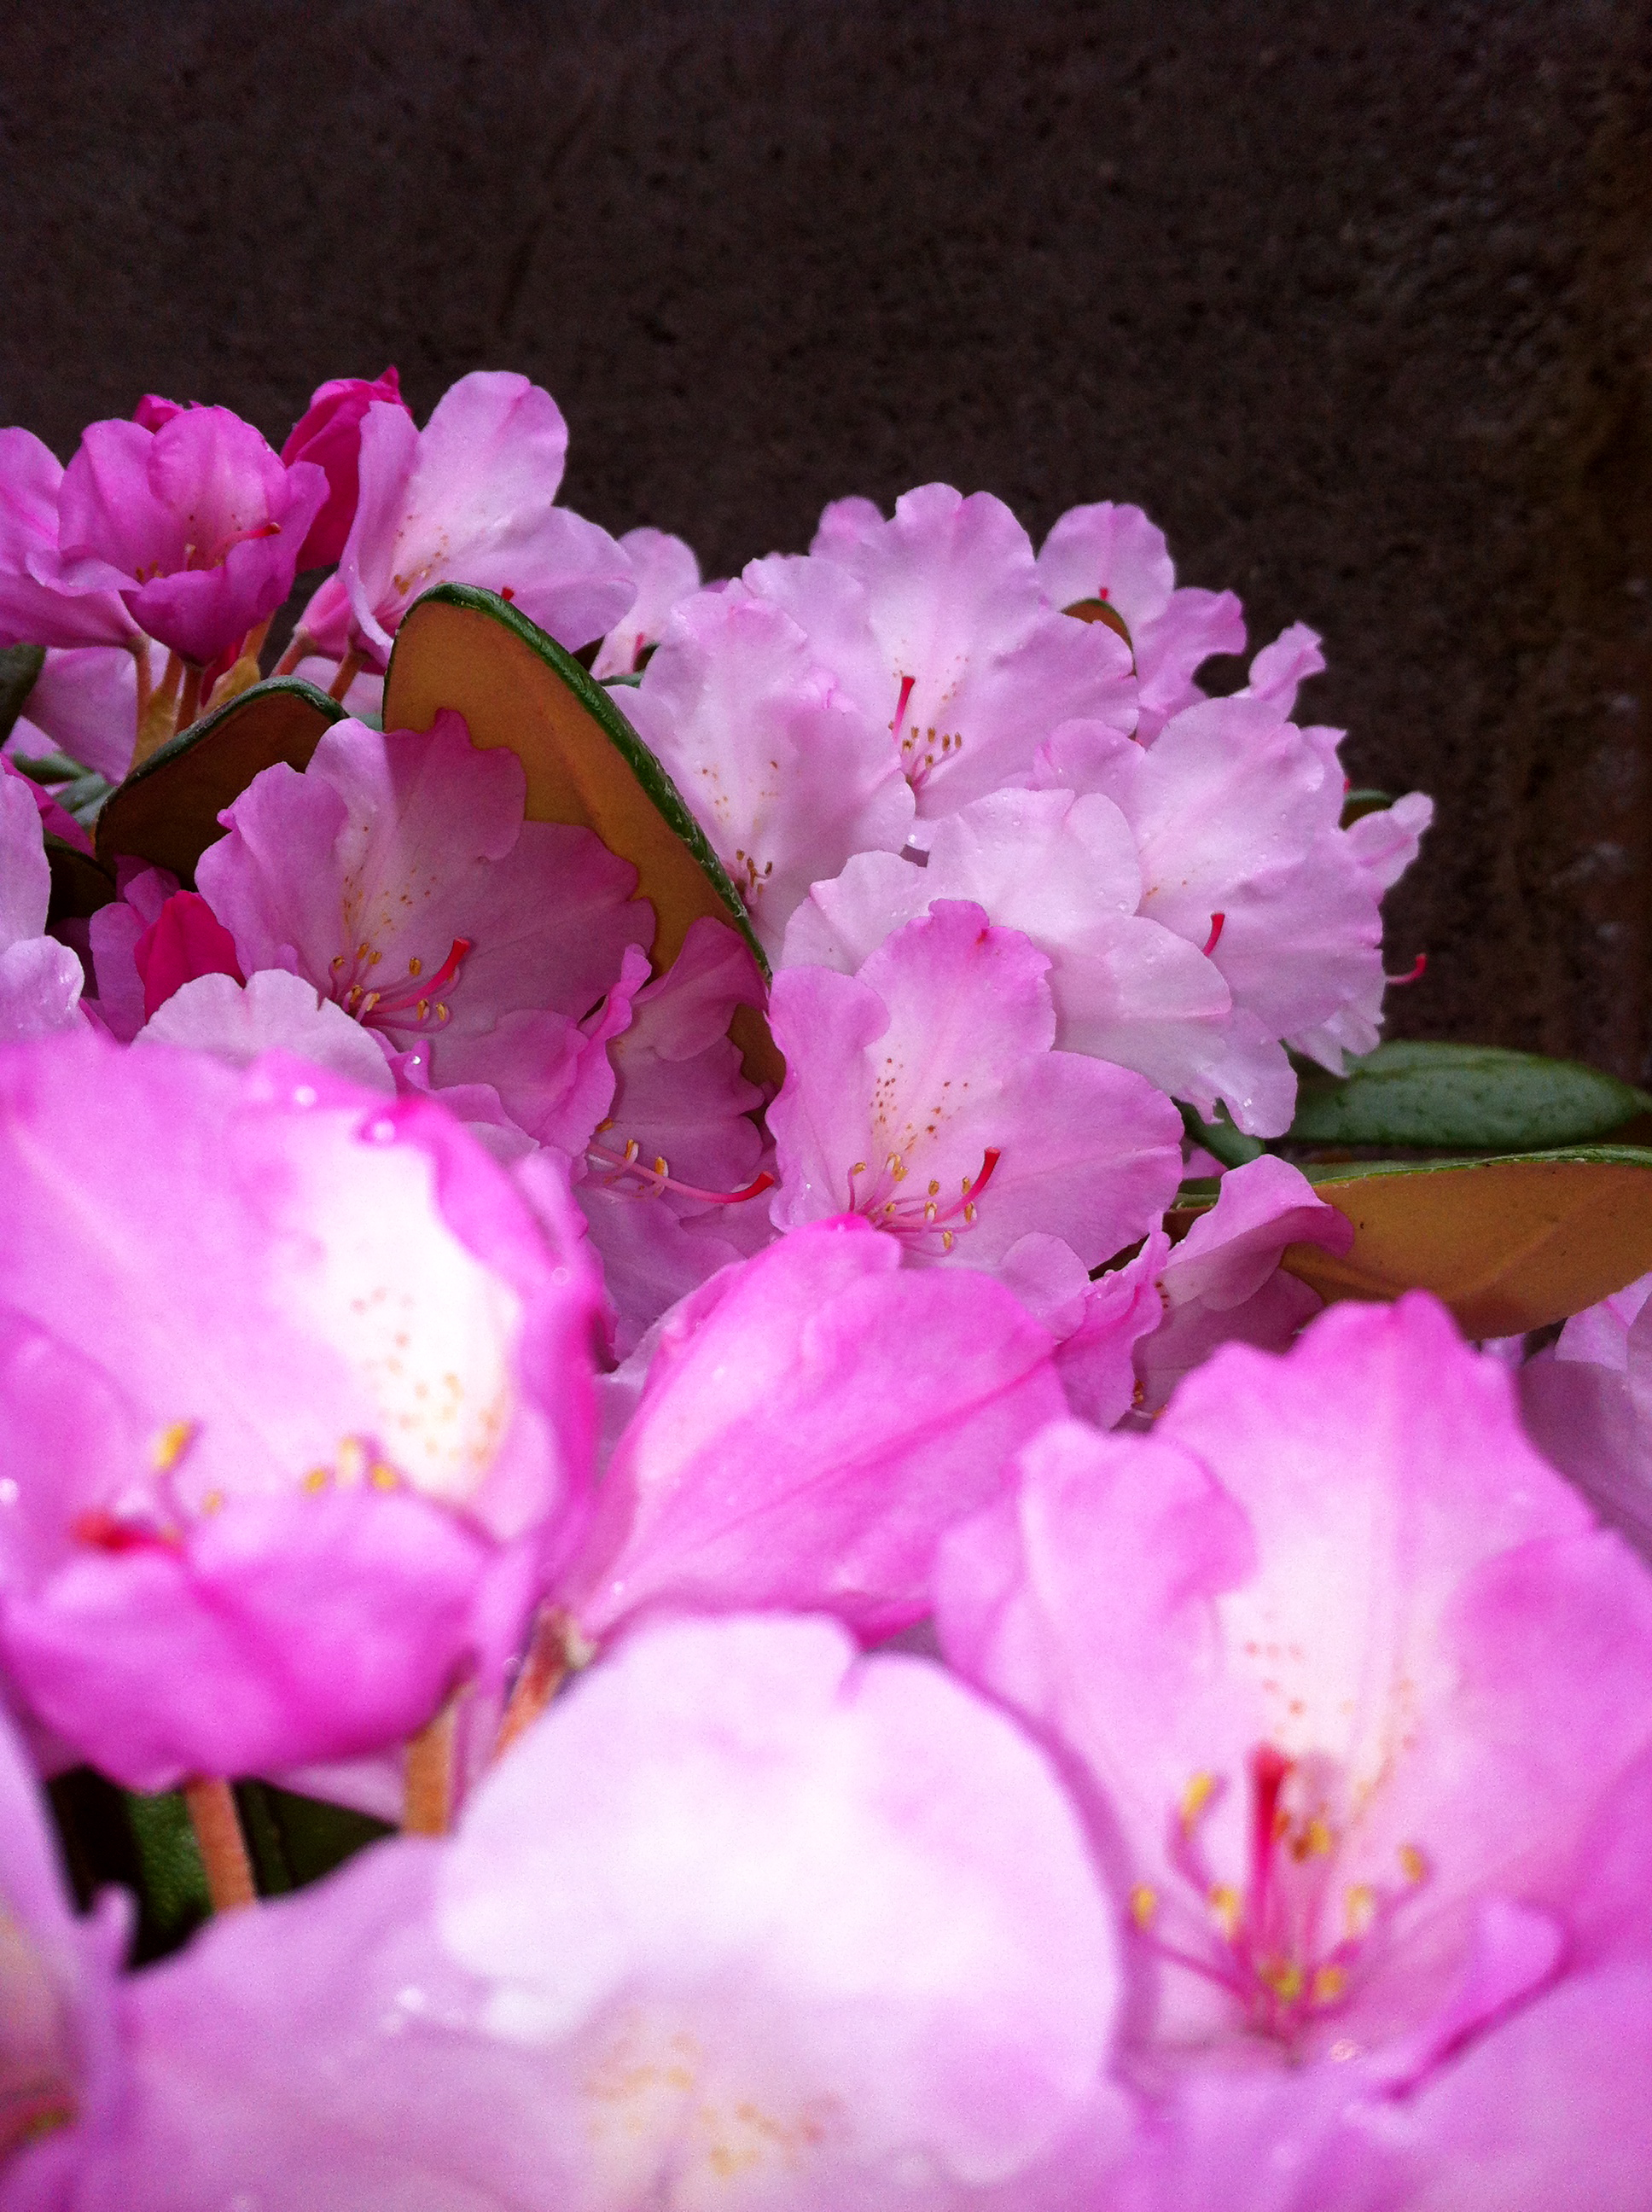 pink rhodo flowers, extremely close up